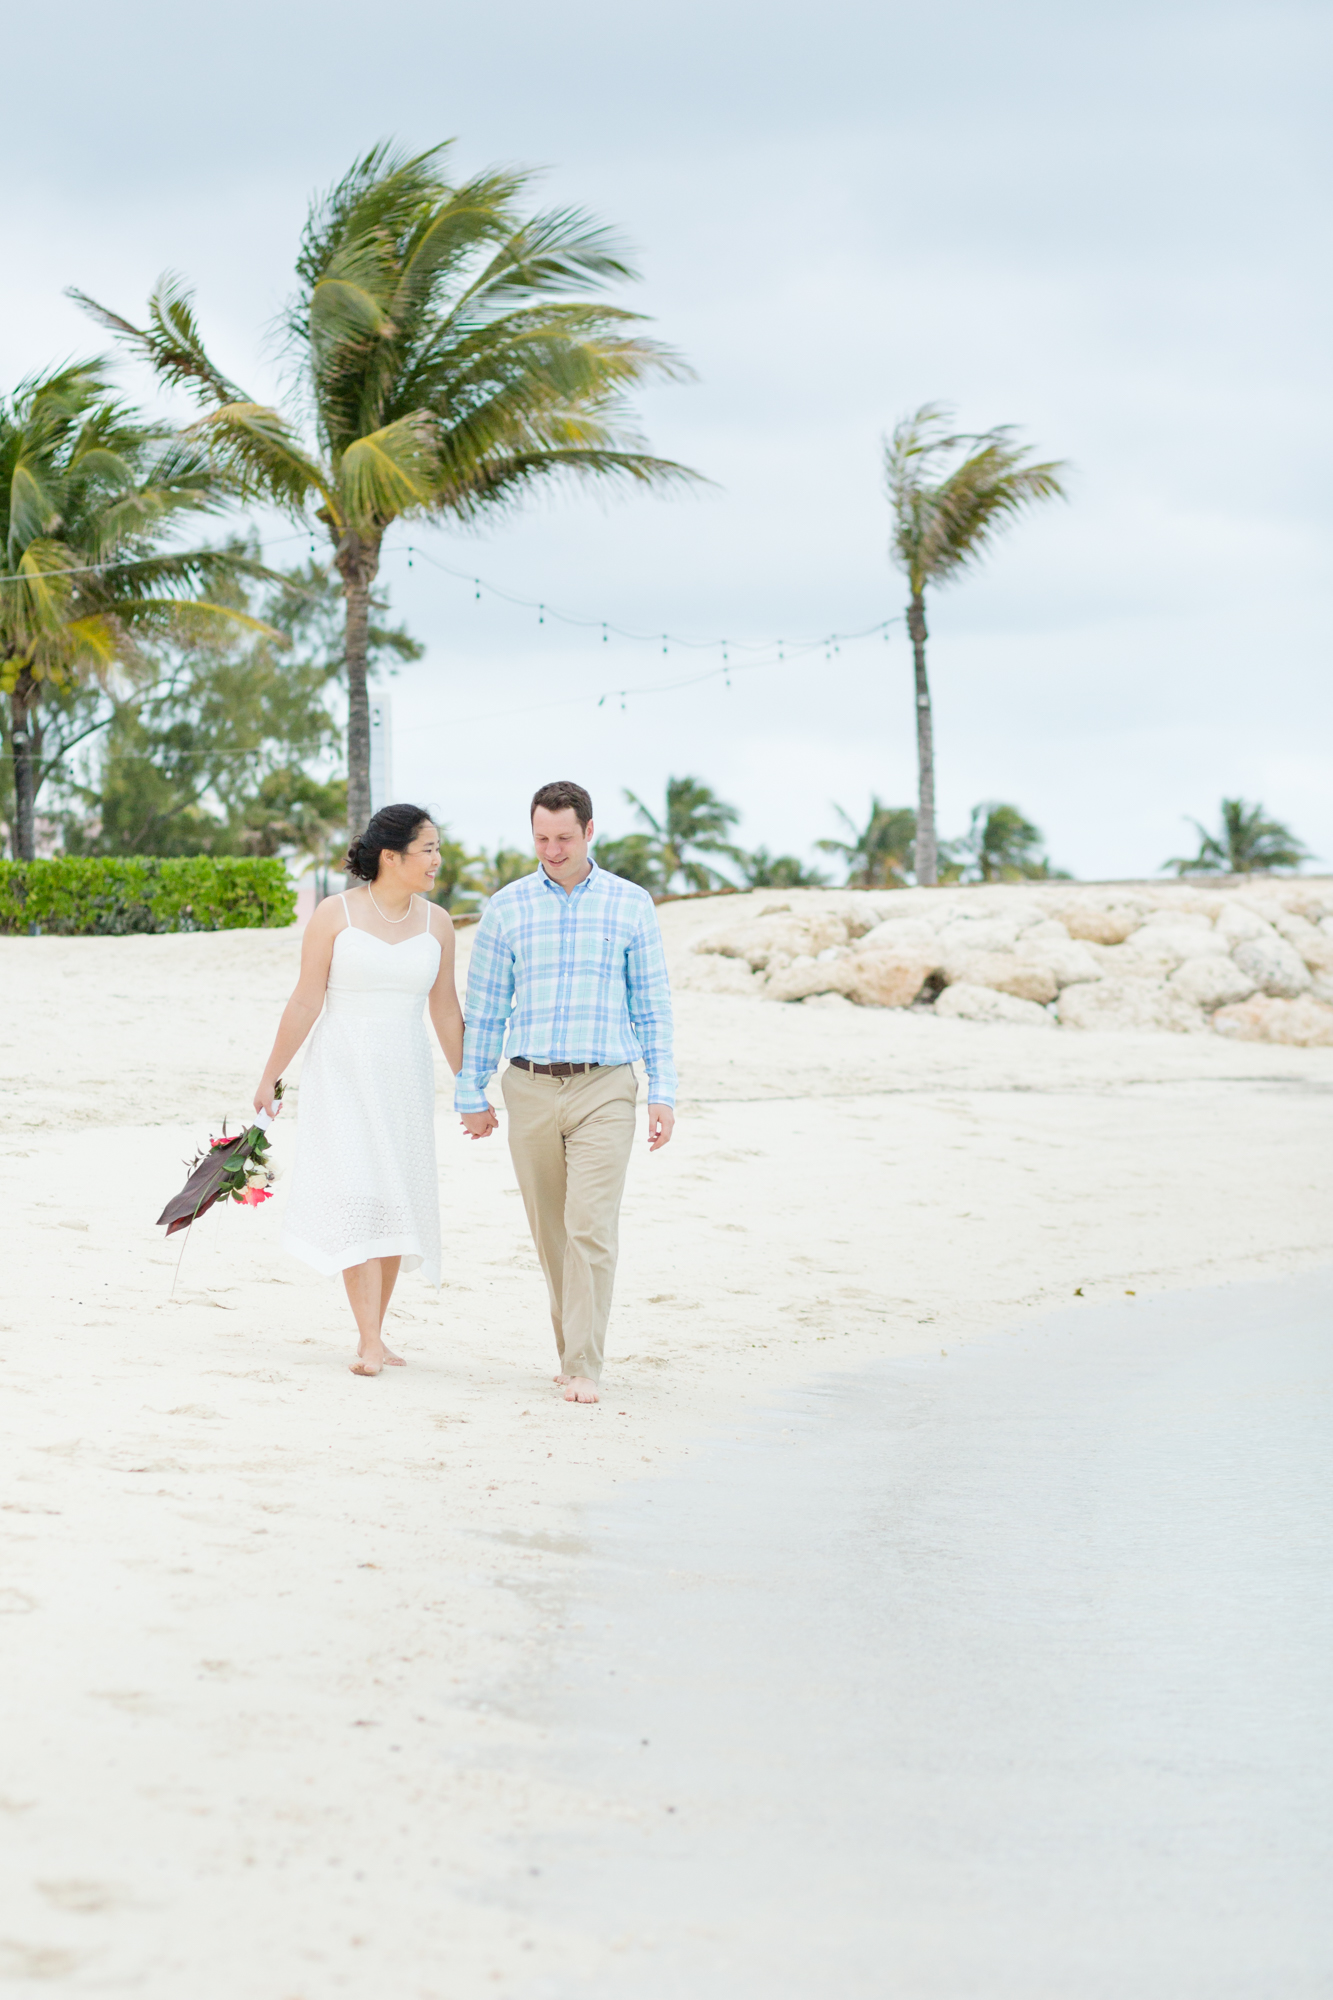 Learn more about Bailey Pianalto Photography's pricing and approach to capturing your destination wedding day perfectly.